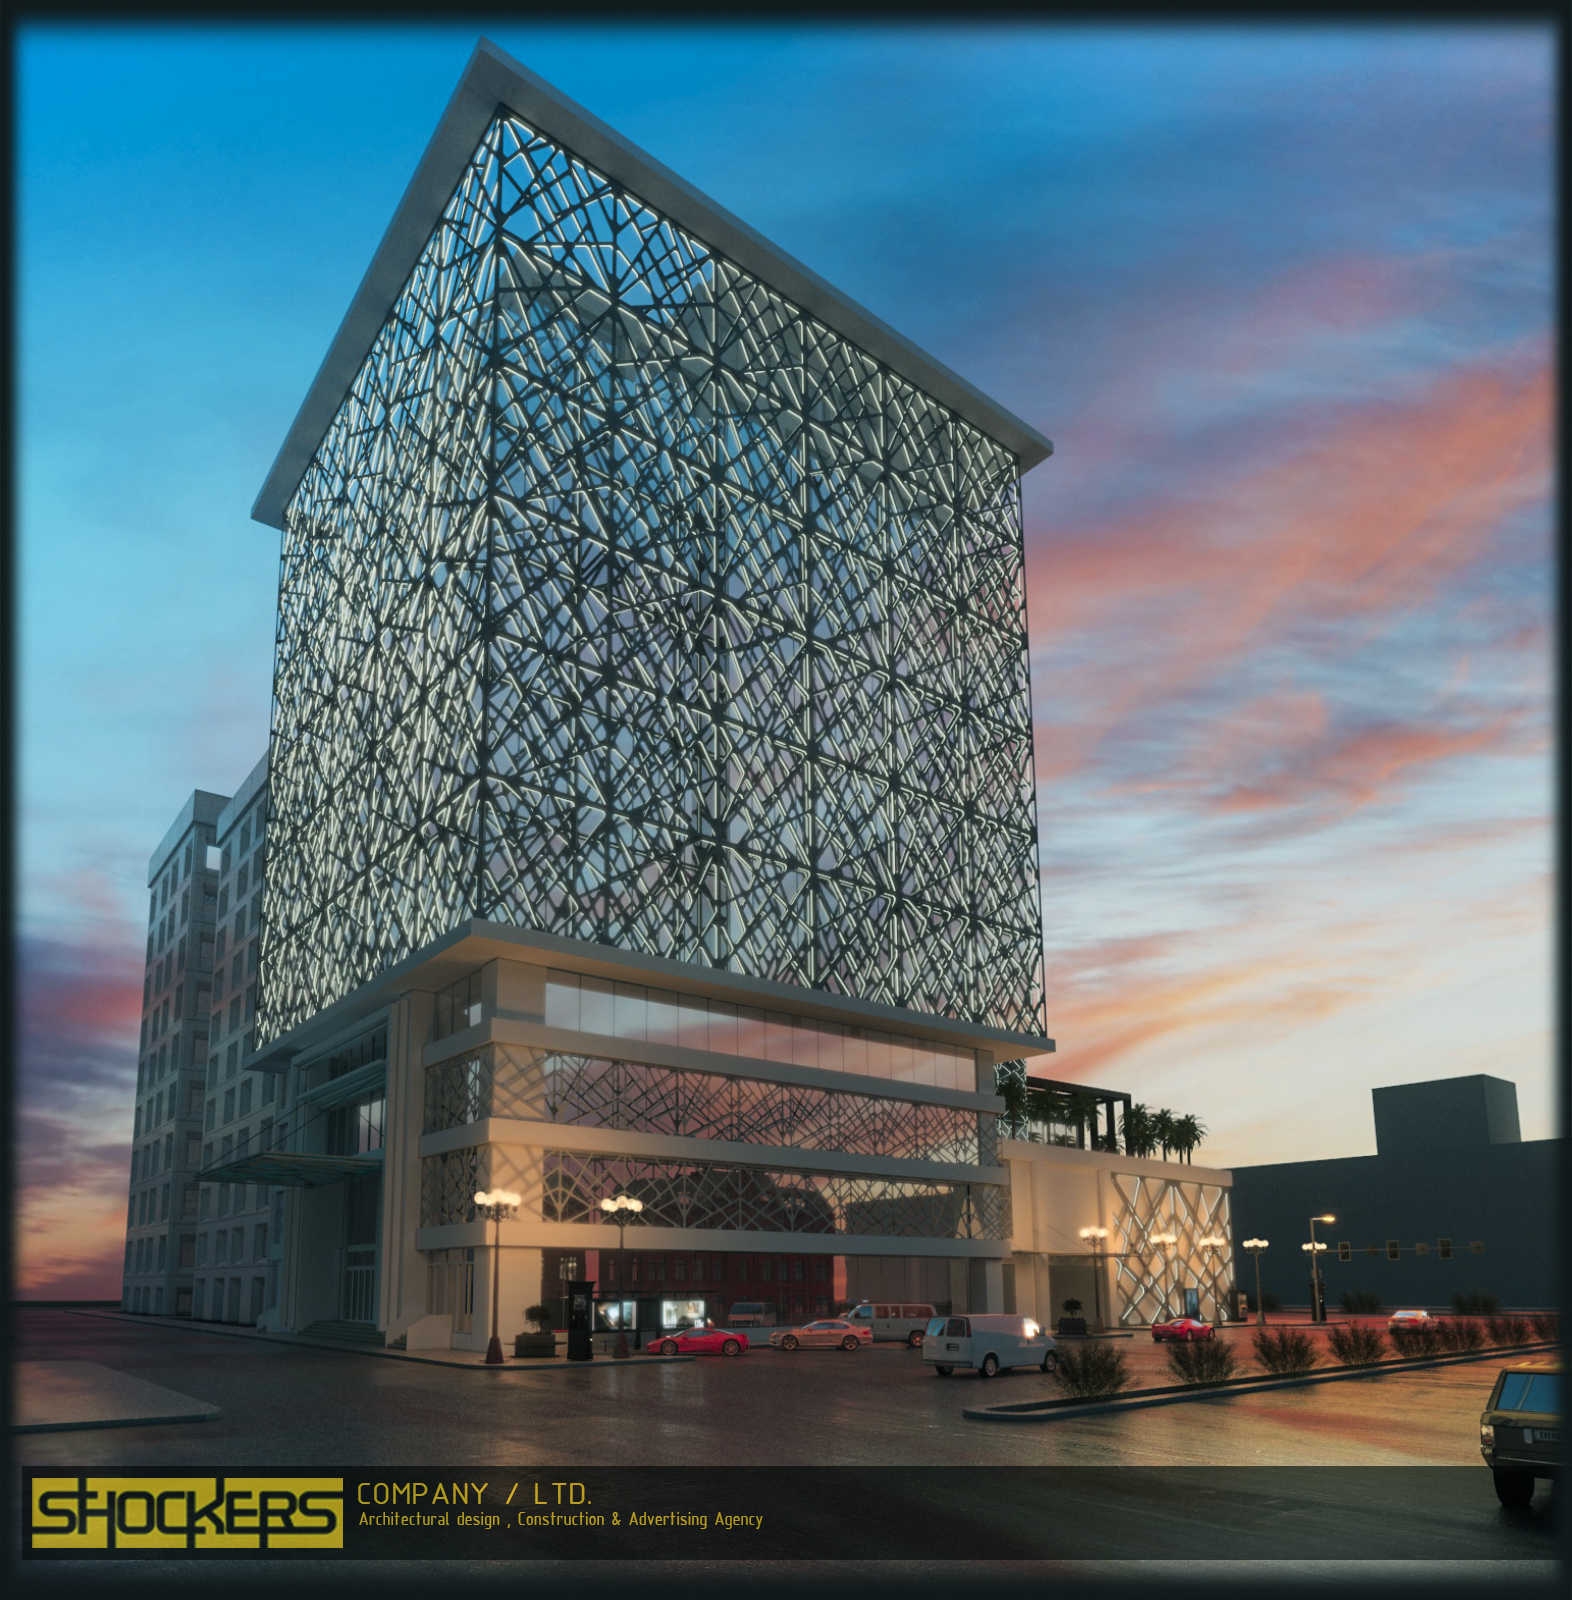 Building Exterior Design - Sulaymaniyah, Kurdonia Towers - Shockers